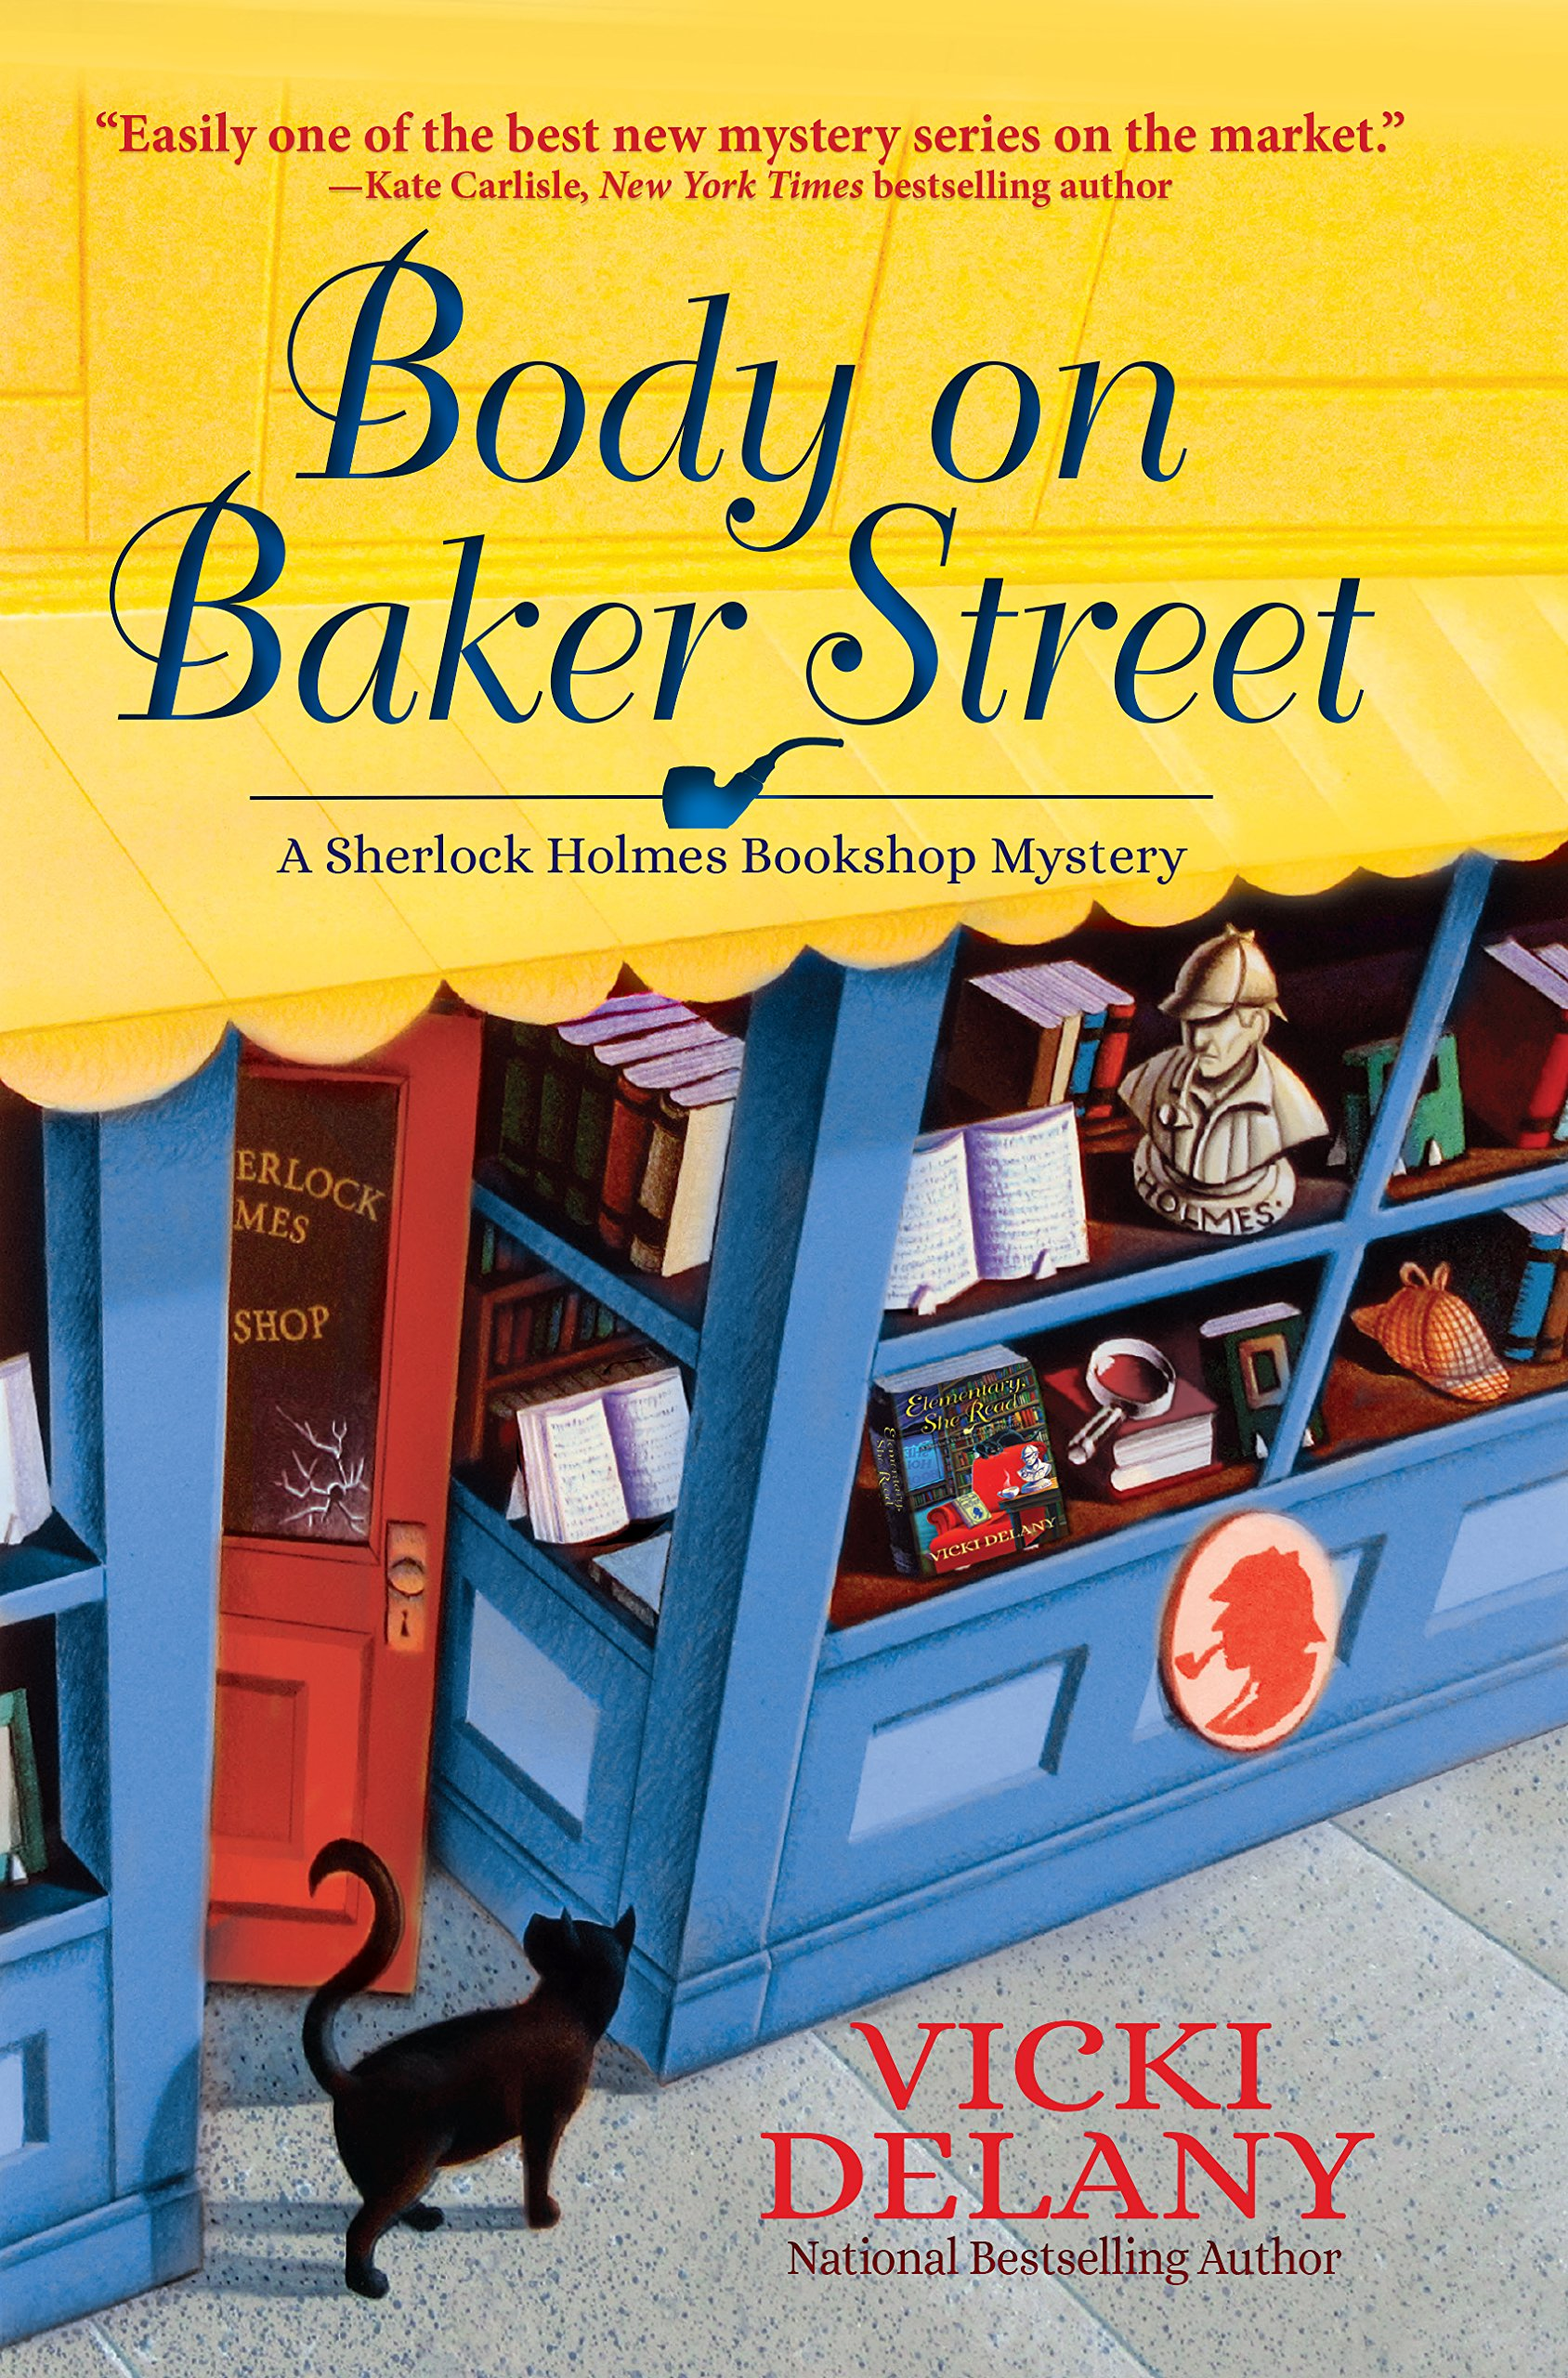 Body on Baker Street: A Sherlock Holmes Bookshop Mystery: Vicki Delany:  9781683314615: Amazon.com: Books